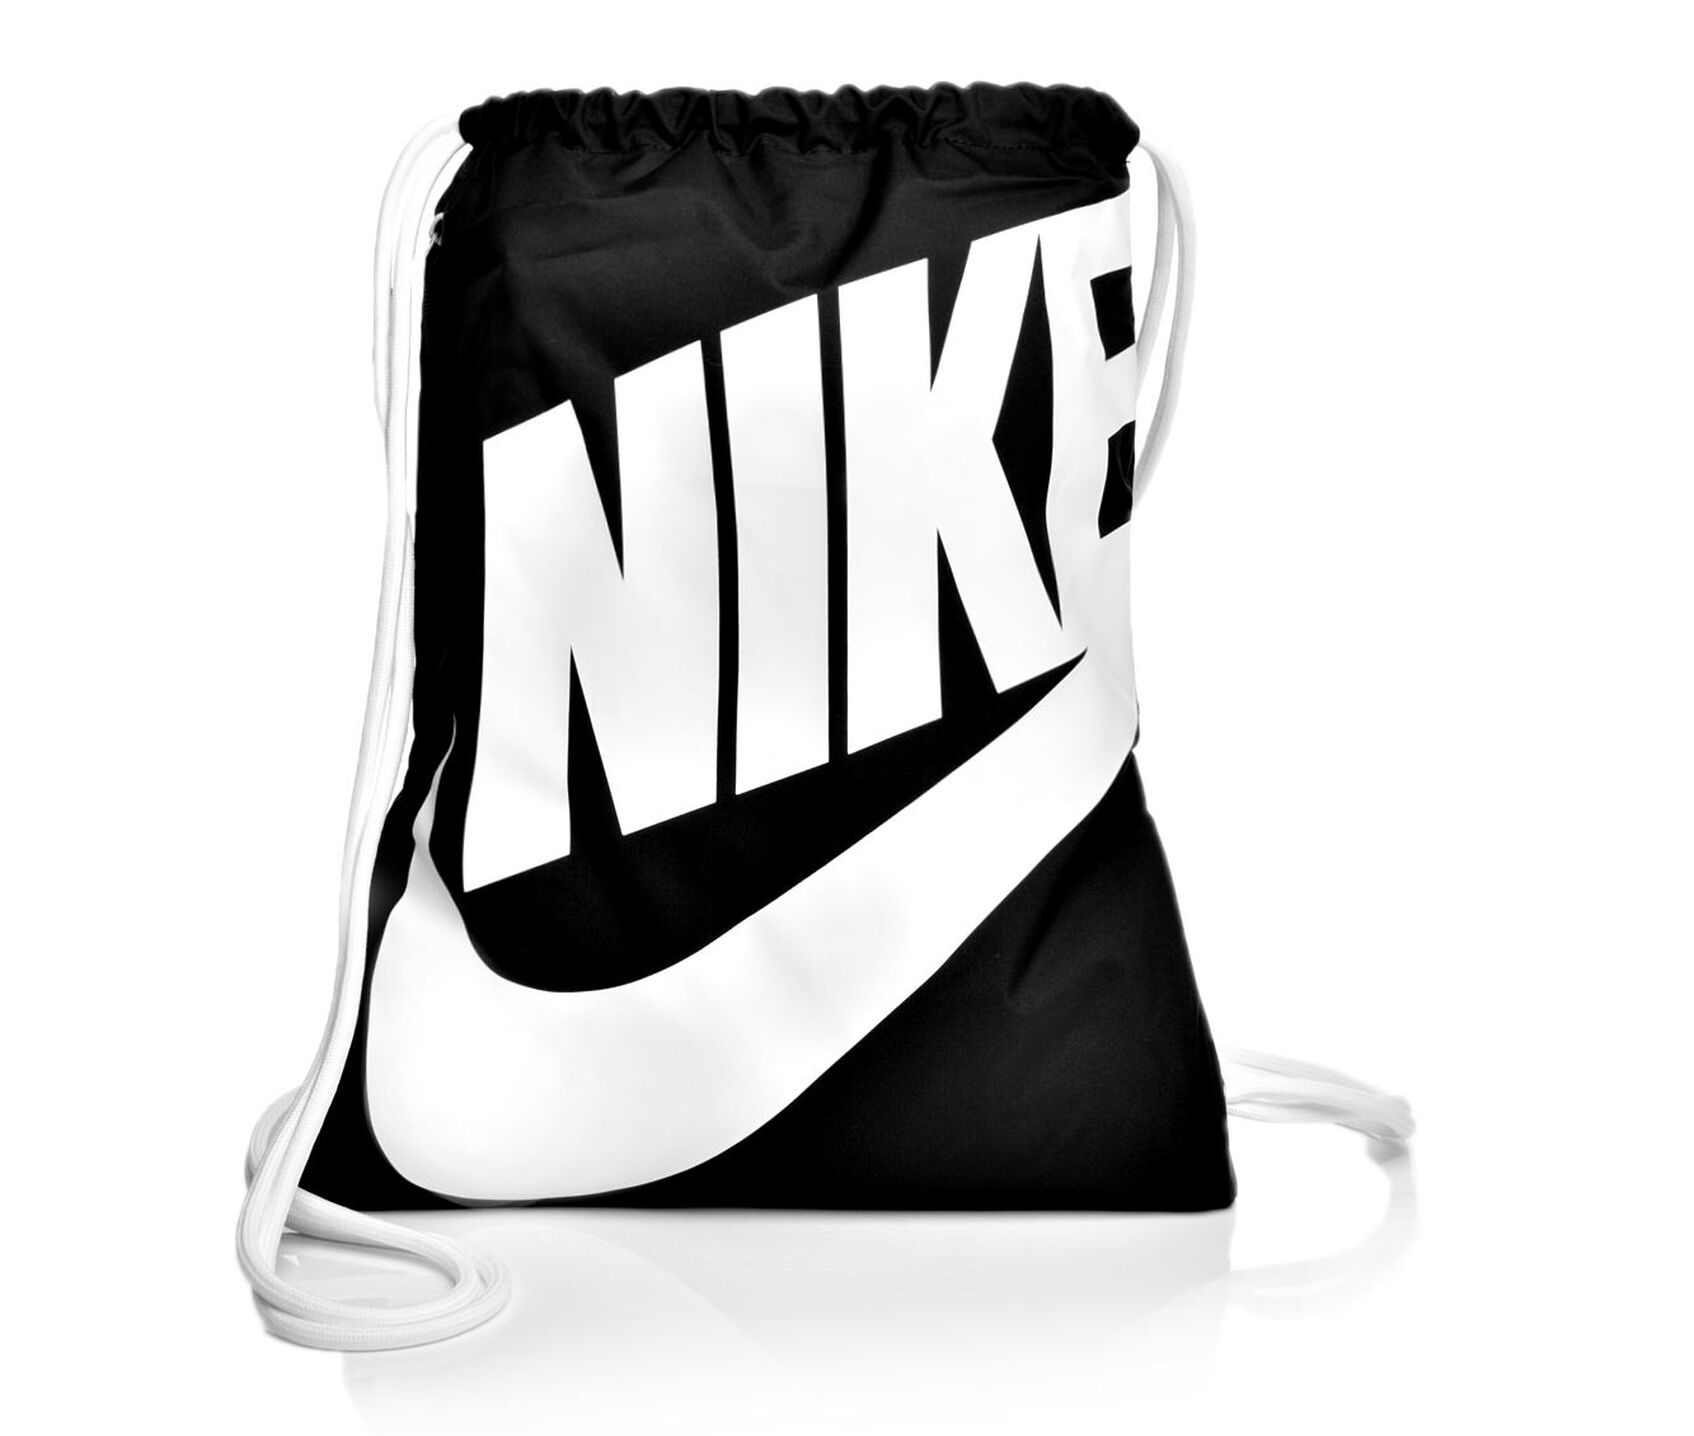 76f68c8a66 Nike Heritage Gymsack. Previous